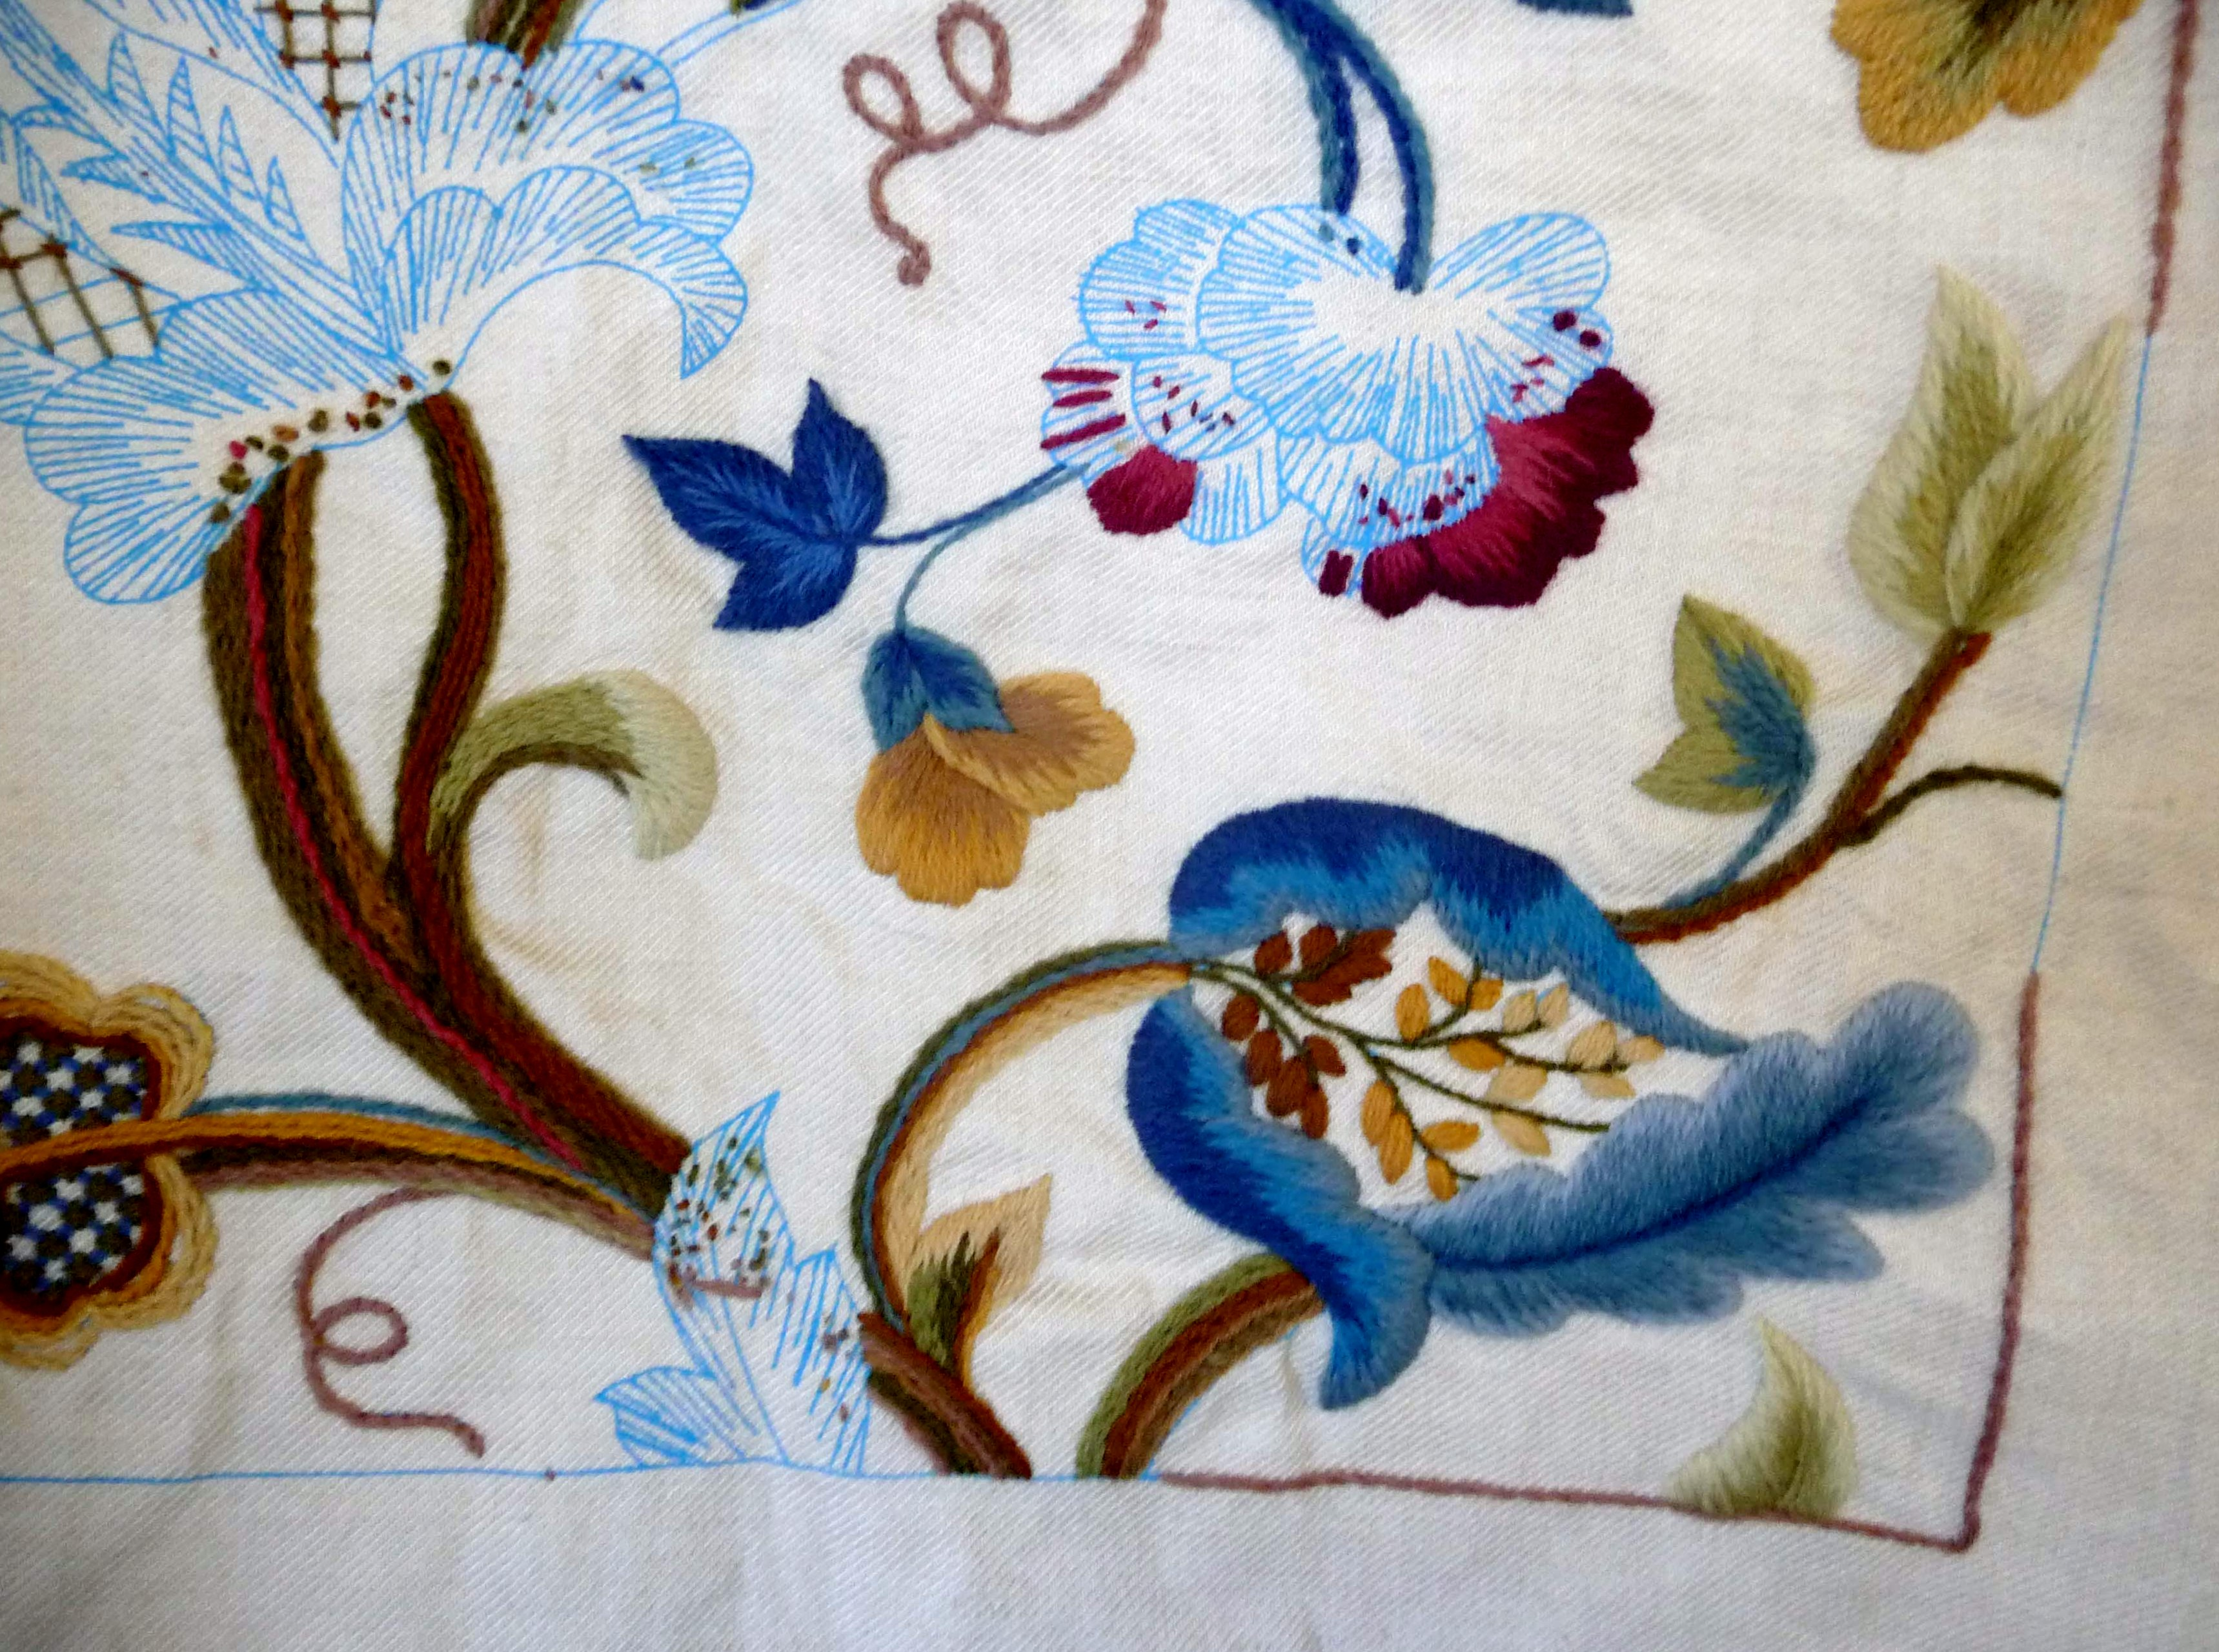 sample of crewelwork embroidery by Philipa Turnbull